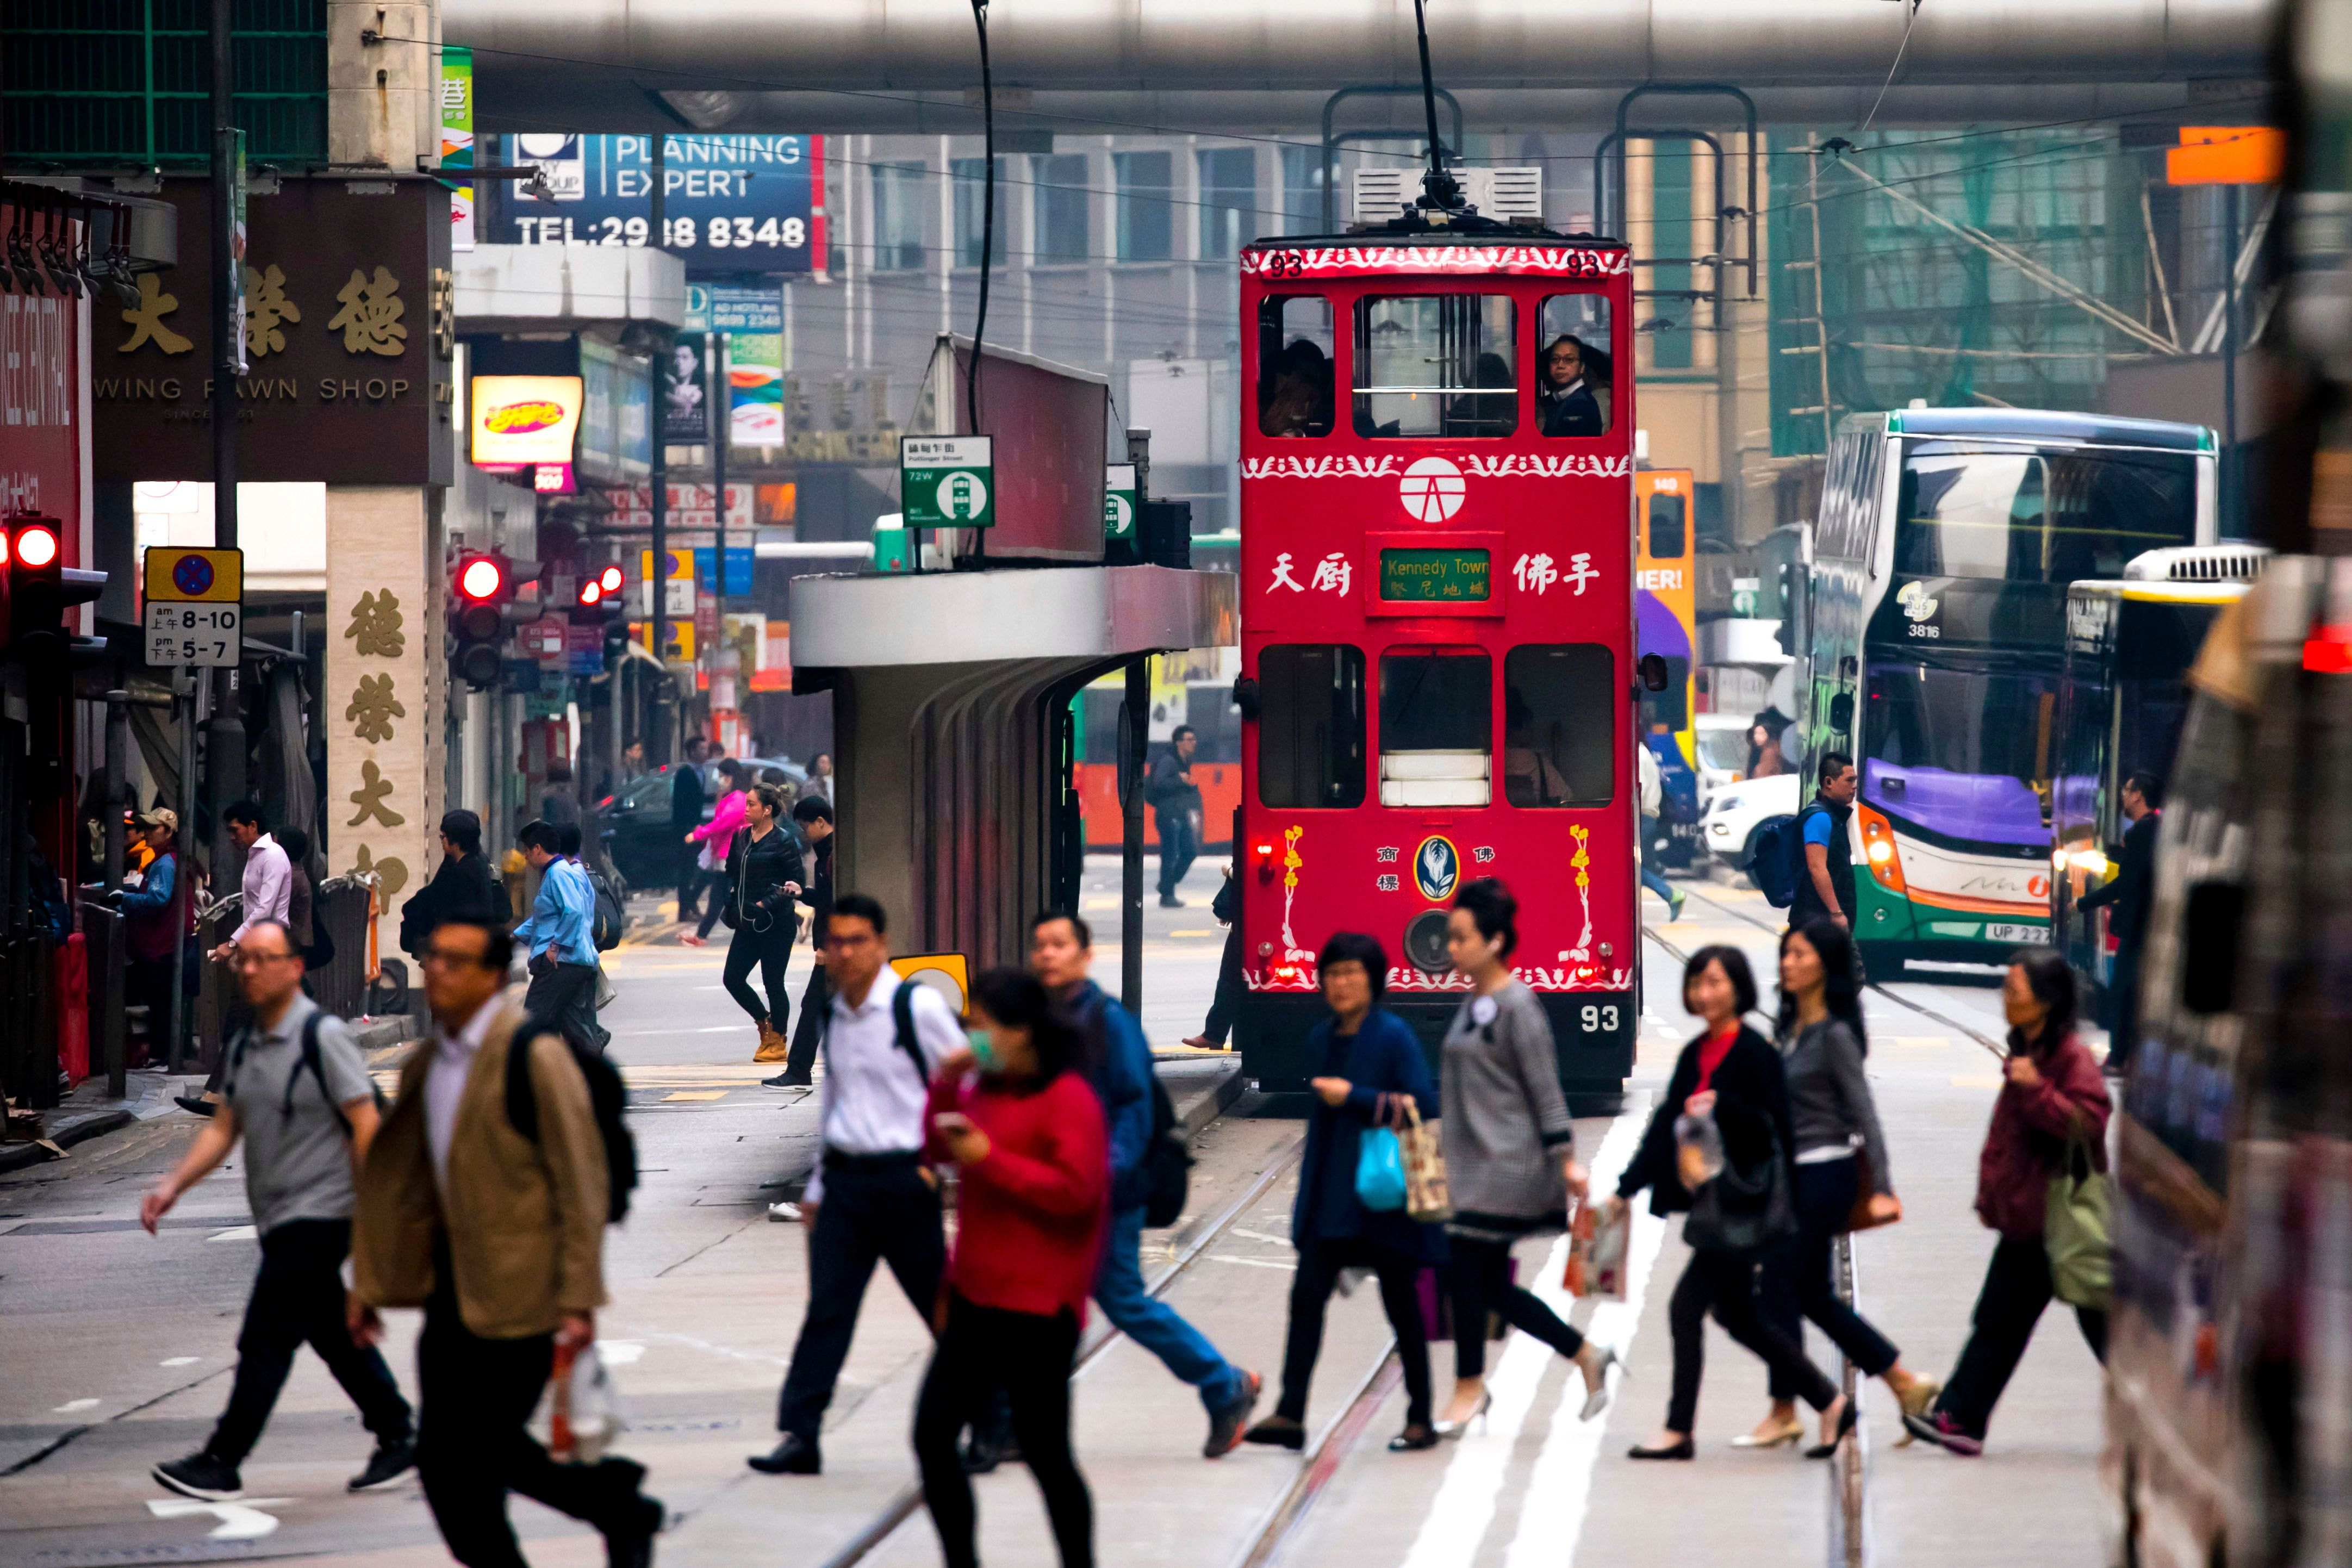 HONG-KONG, CHINA - MARCH 01: A two-storey tramway runs on 'Des Voeux Road' as pedestrians cross Central Street on March 01, 2018 in Hong-Kong, China. Hong Kong is one of the most densely populated territories in the world. (Photo by Vincent Isore/IP3/Getty Images)